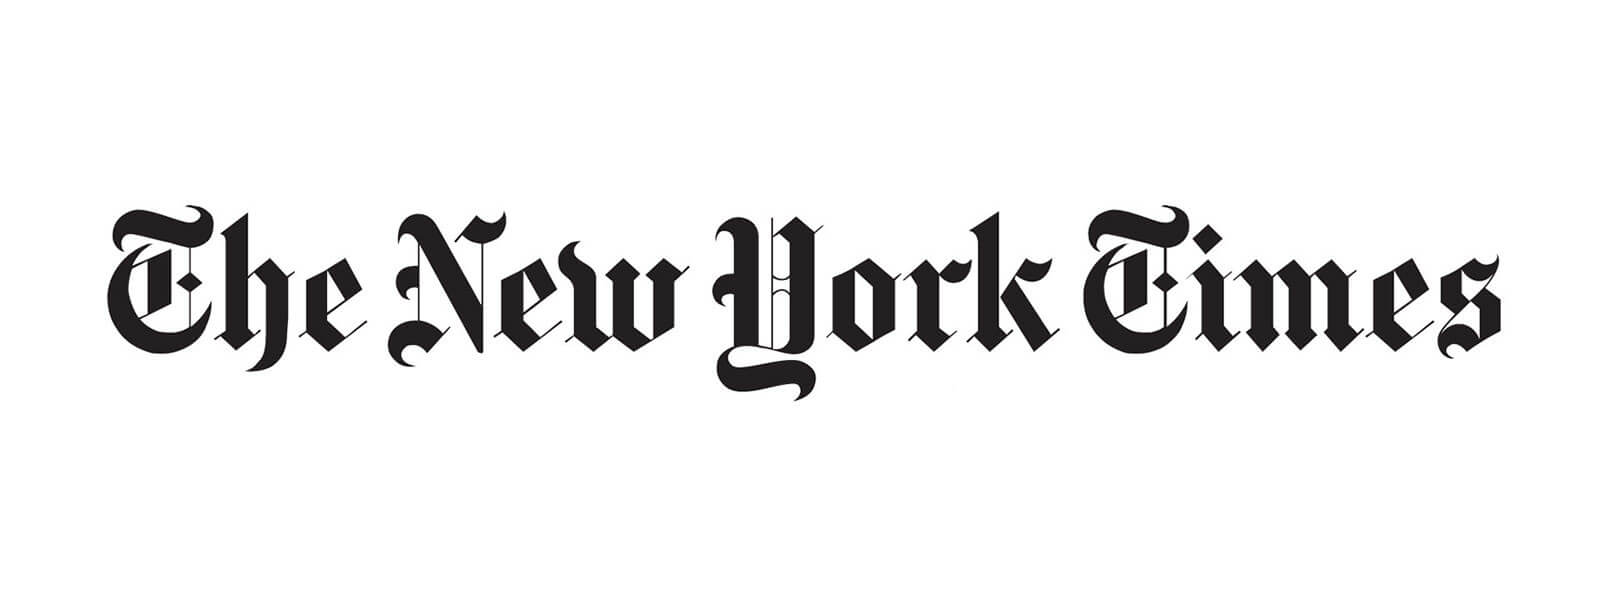 new_york_times_logo_turbine leaf blower